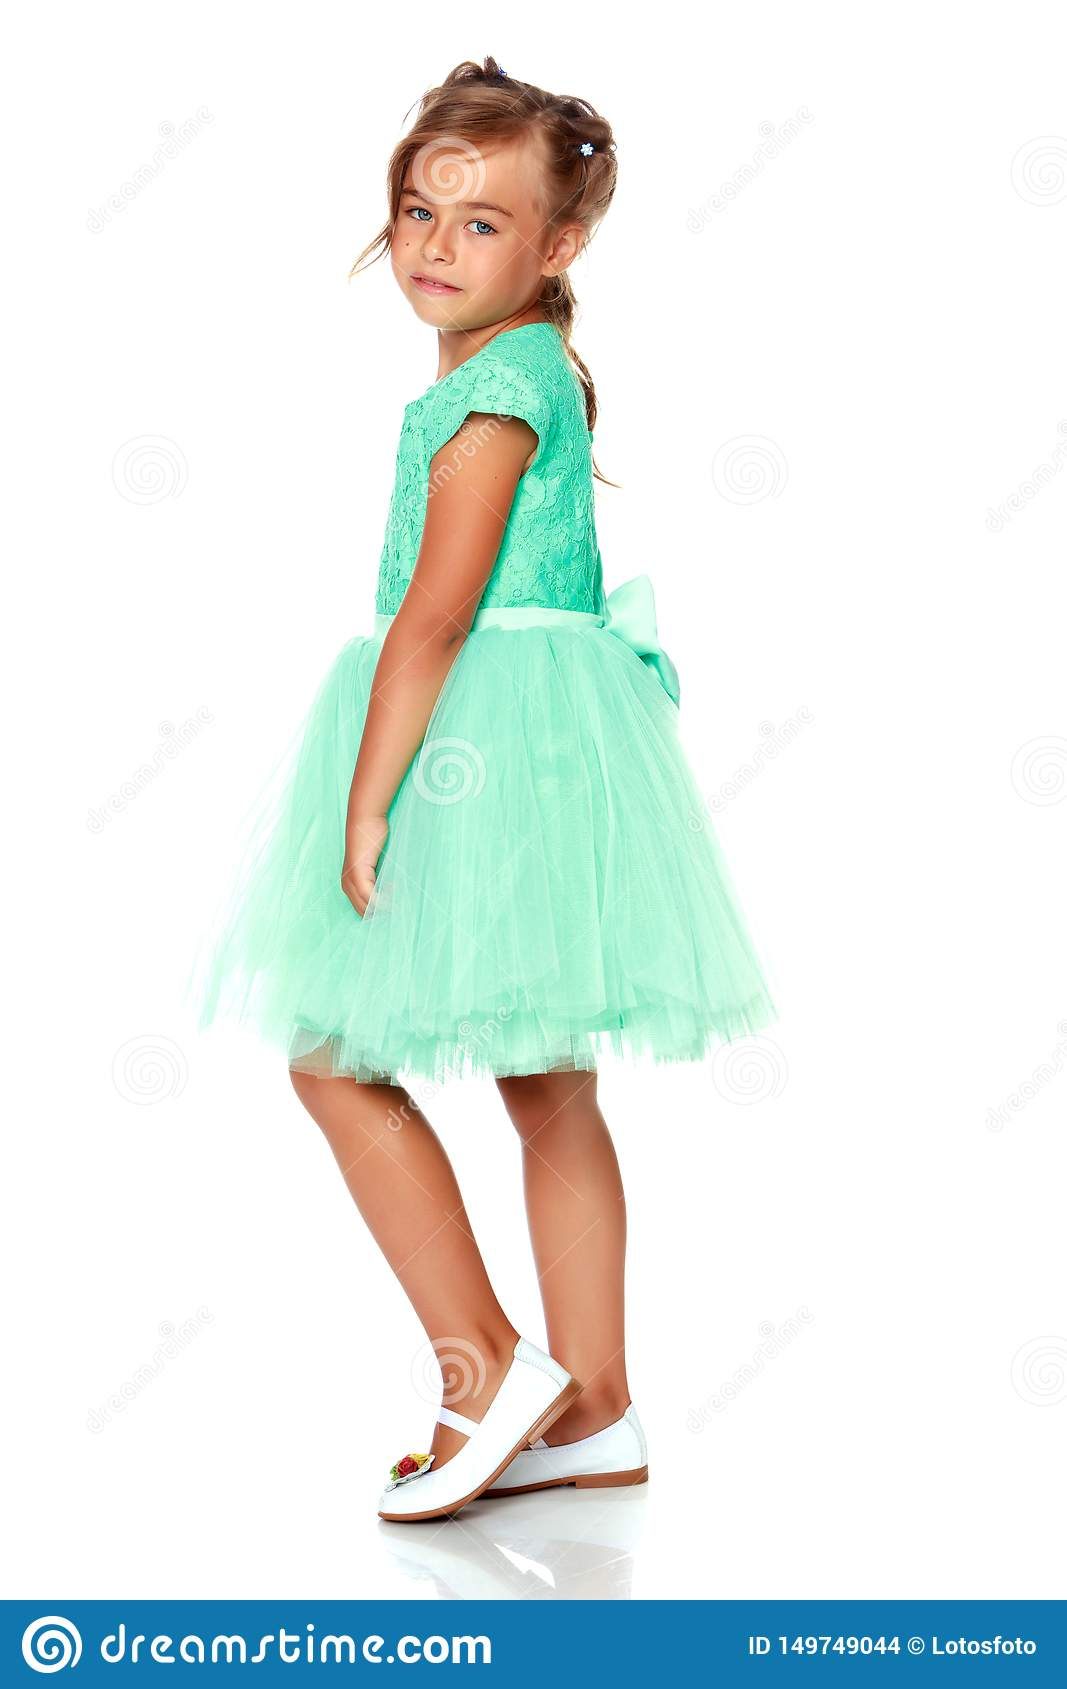 Fashionable Little Girl In A Dress Stock Photo - Image of lovely